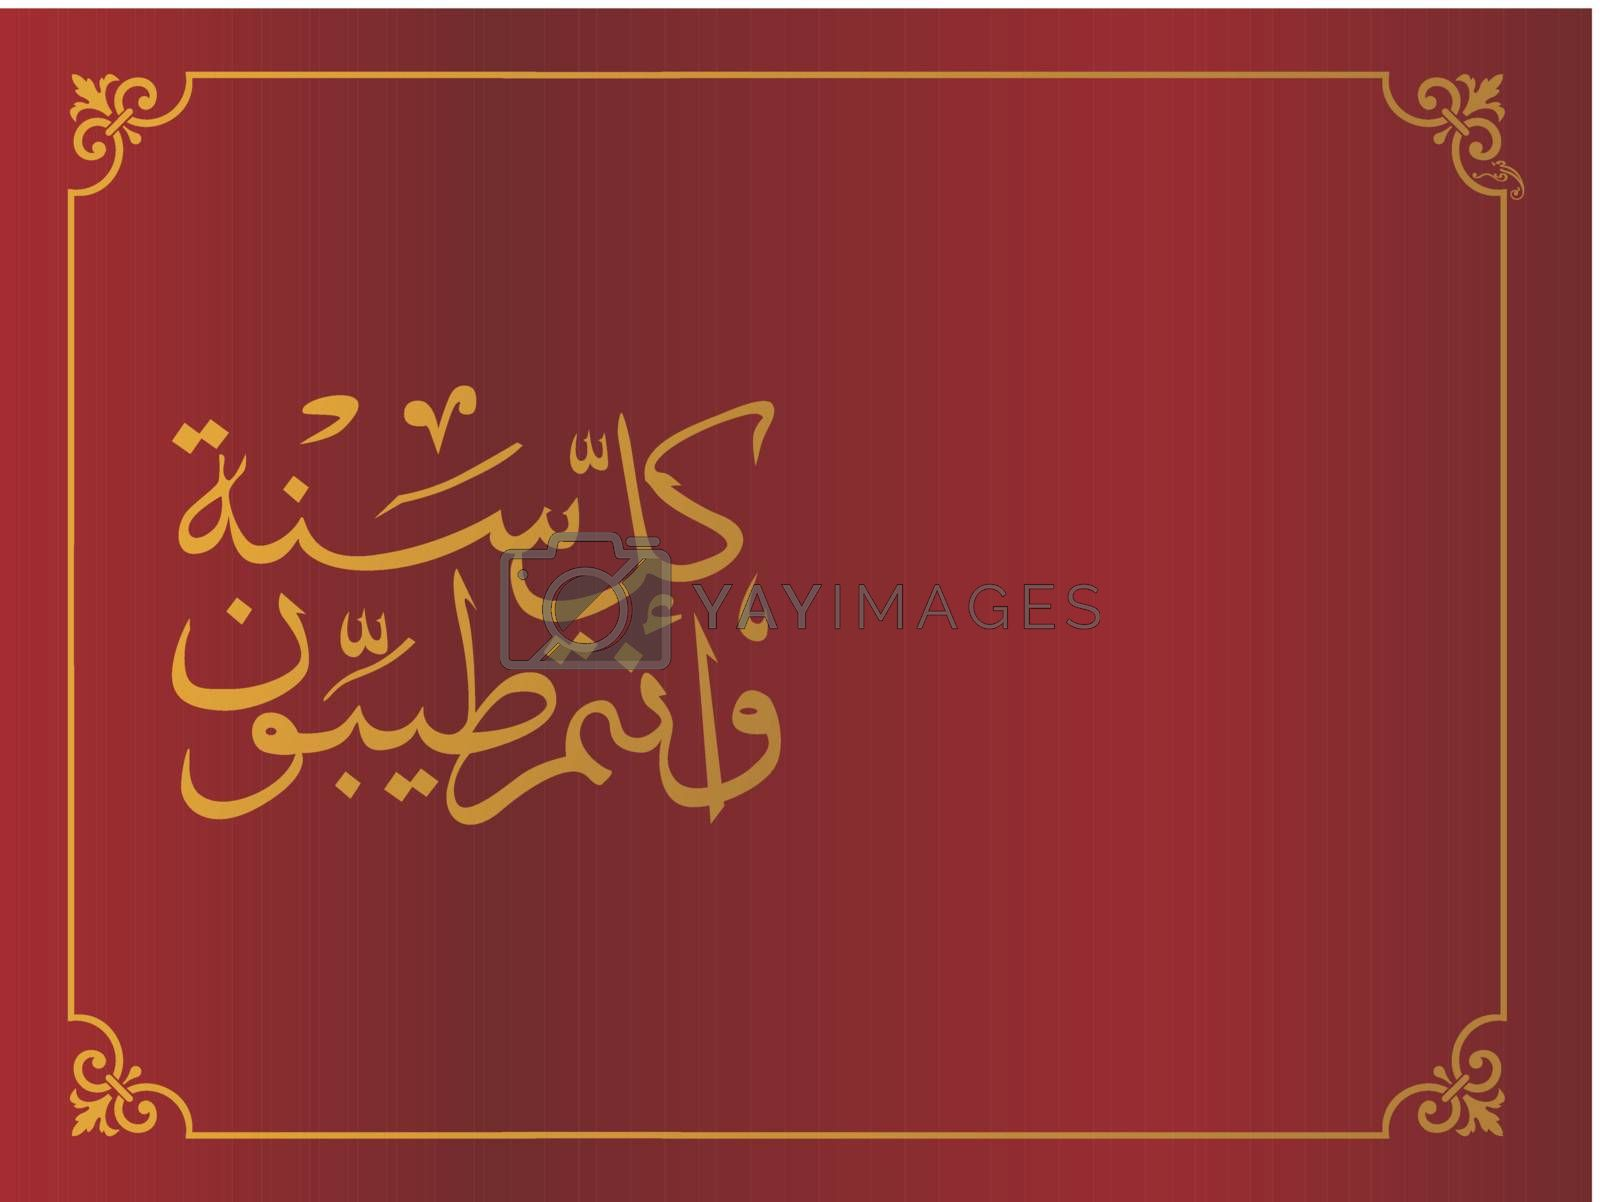 abstract frame with creative islamic background, design68 by aispl